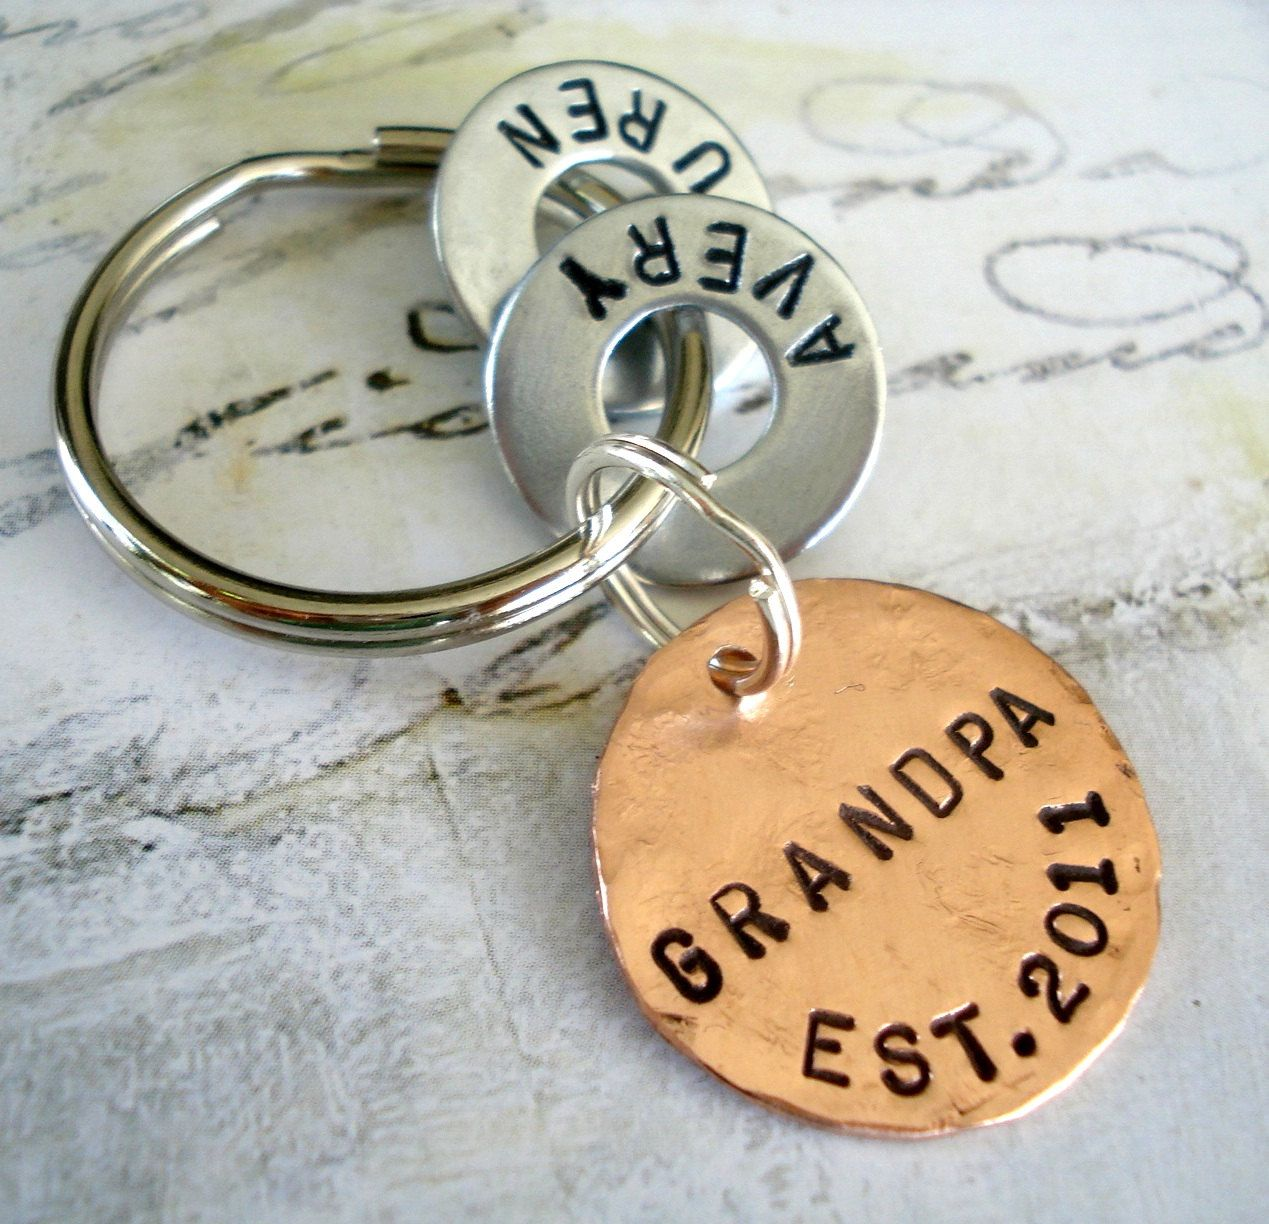 Grandpa Gift Personalized Christmas Keychain with Names - Grandparent Birthday - Hand Stamped Key Chain GRANDPA EST. Washer and Copper Disc #grandpagifts